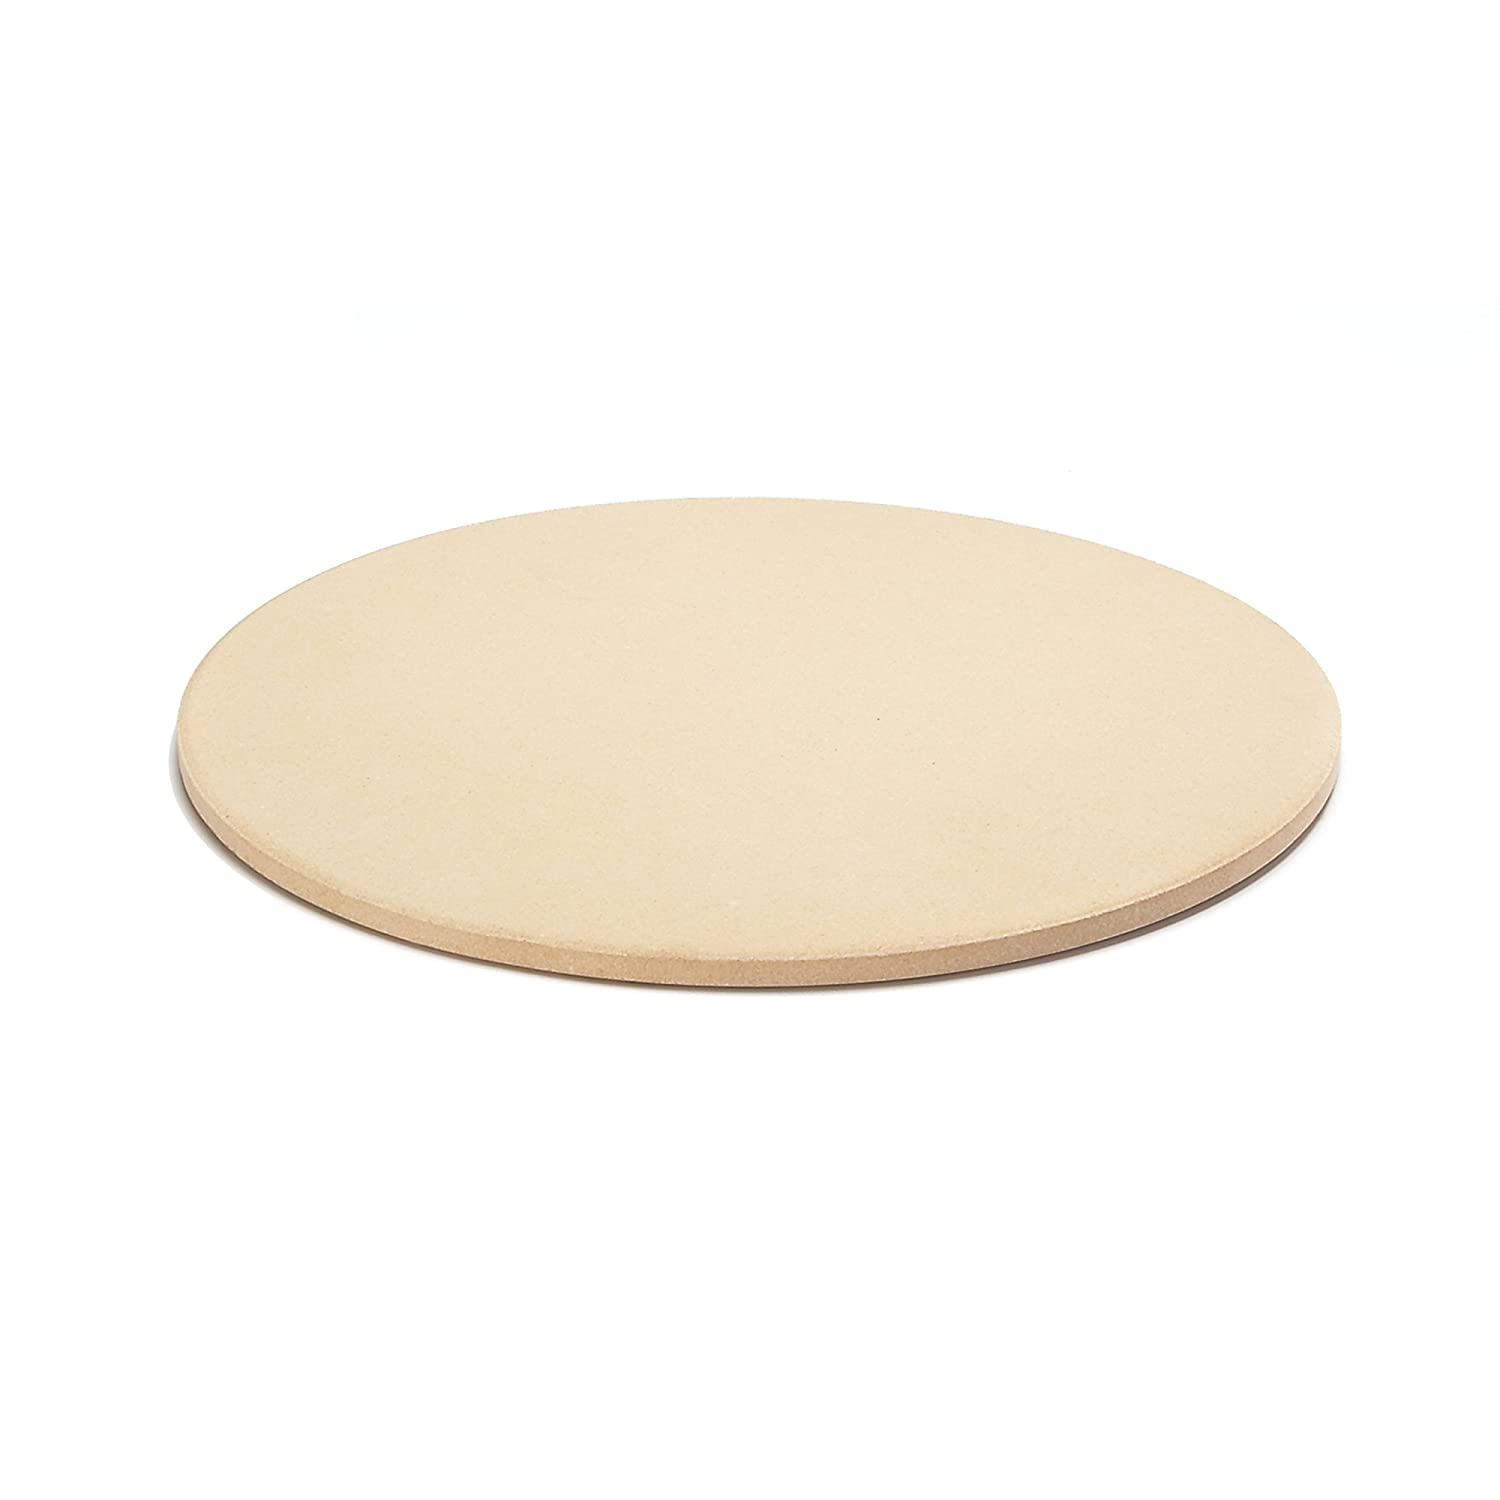 Outset QZ44 13 Inch Pizza Grill Stone: 13-Inch